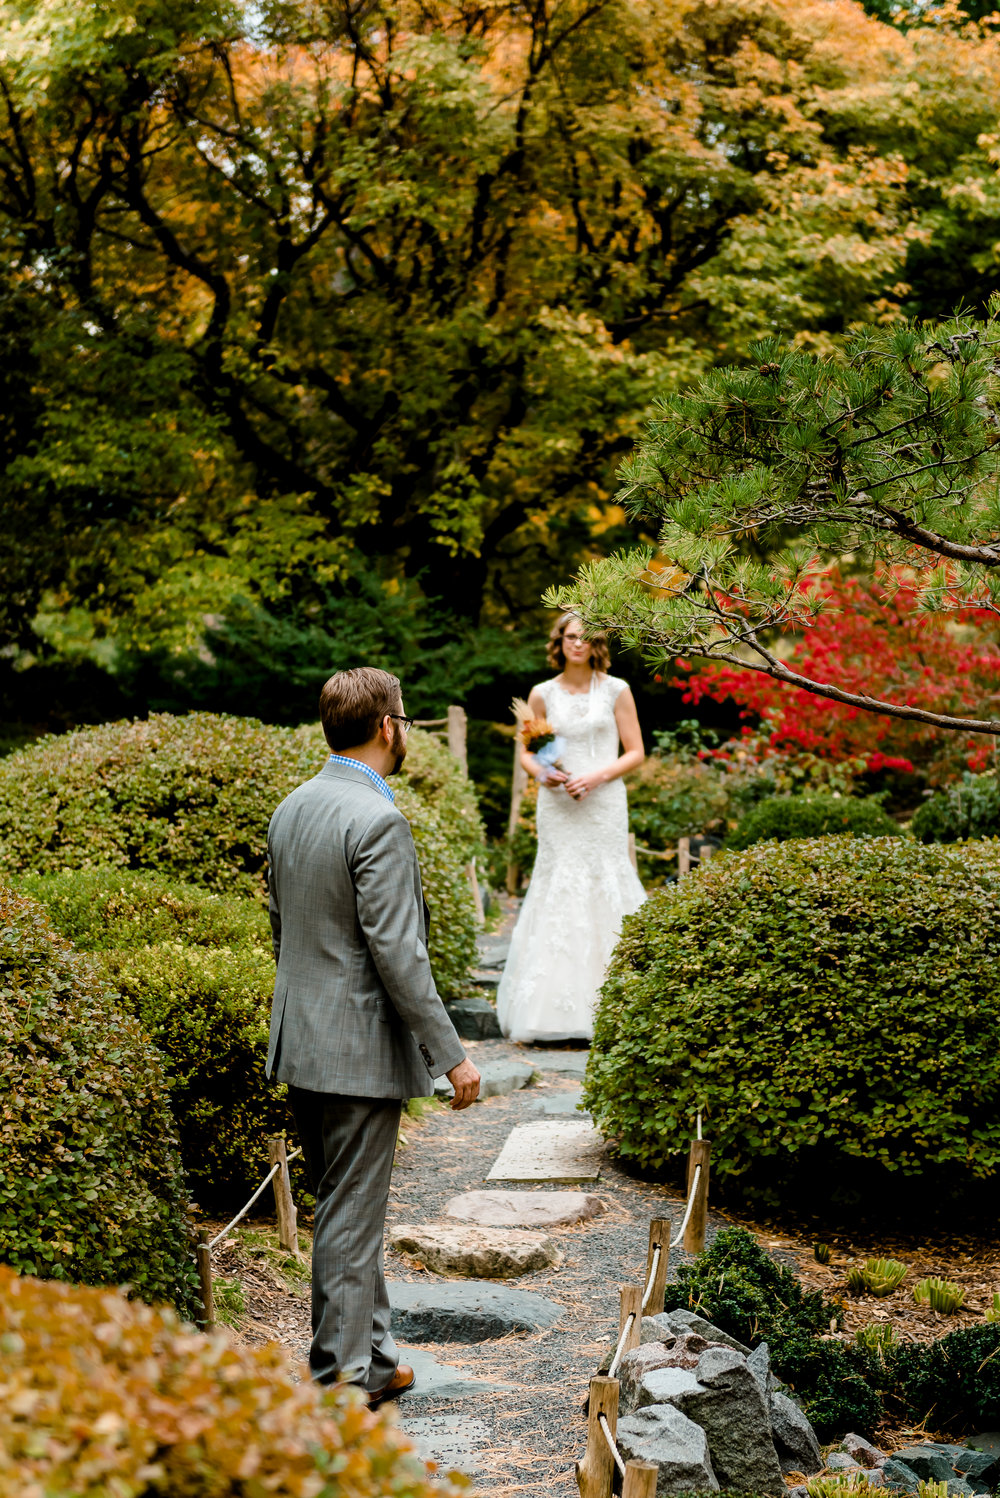 Wedding at MN Landscape Arboretum - First Look with Bride and Groom in Japanese Gardens - Minnesota Wedding Photographer